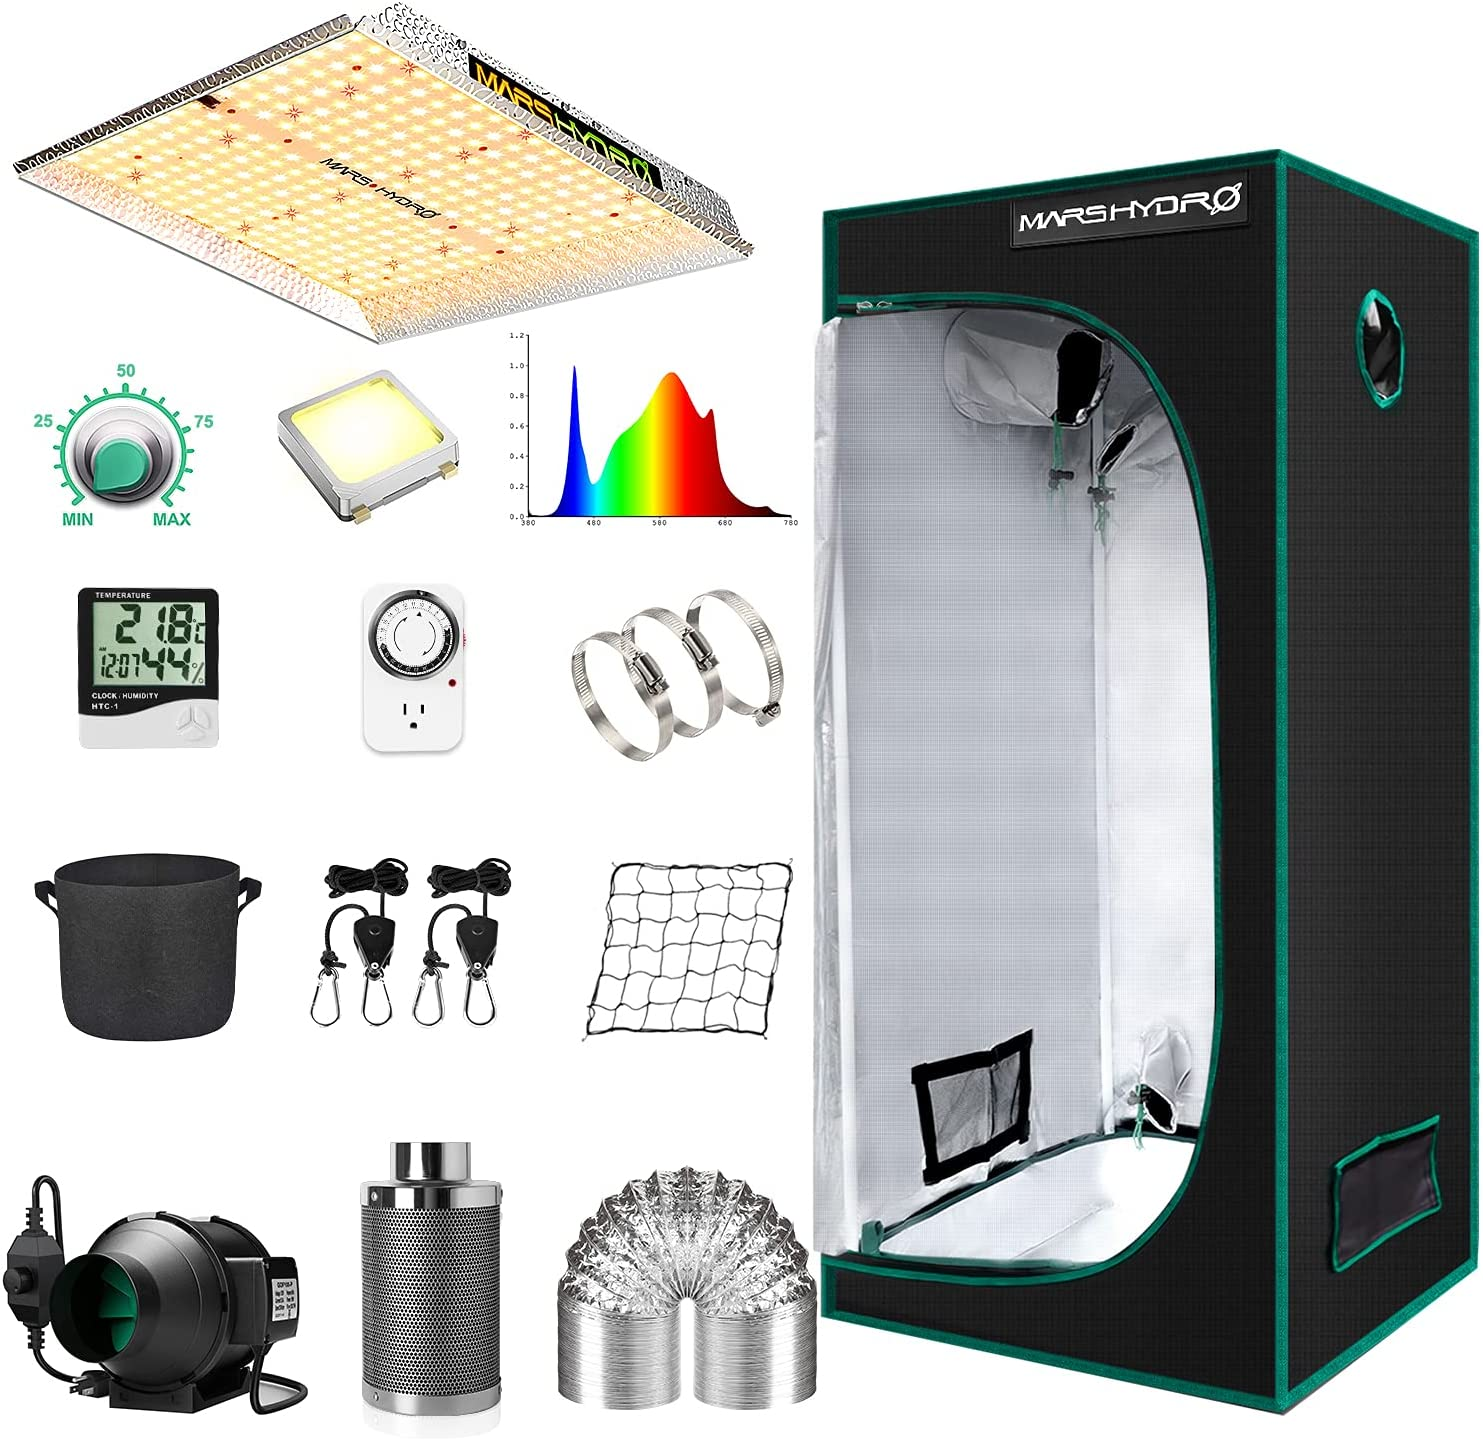 MARS HYDRO Grow Tent Kit LED Dimmable TS1000W Complete Max Outlet sale feature 80% OFF 2.3x2.3ft